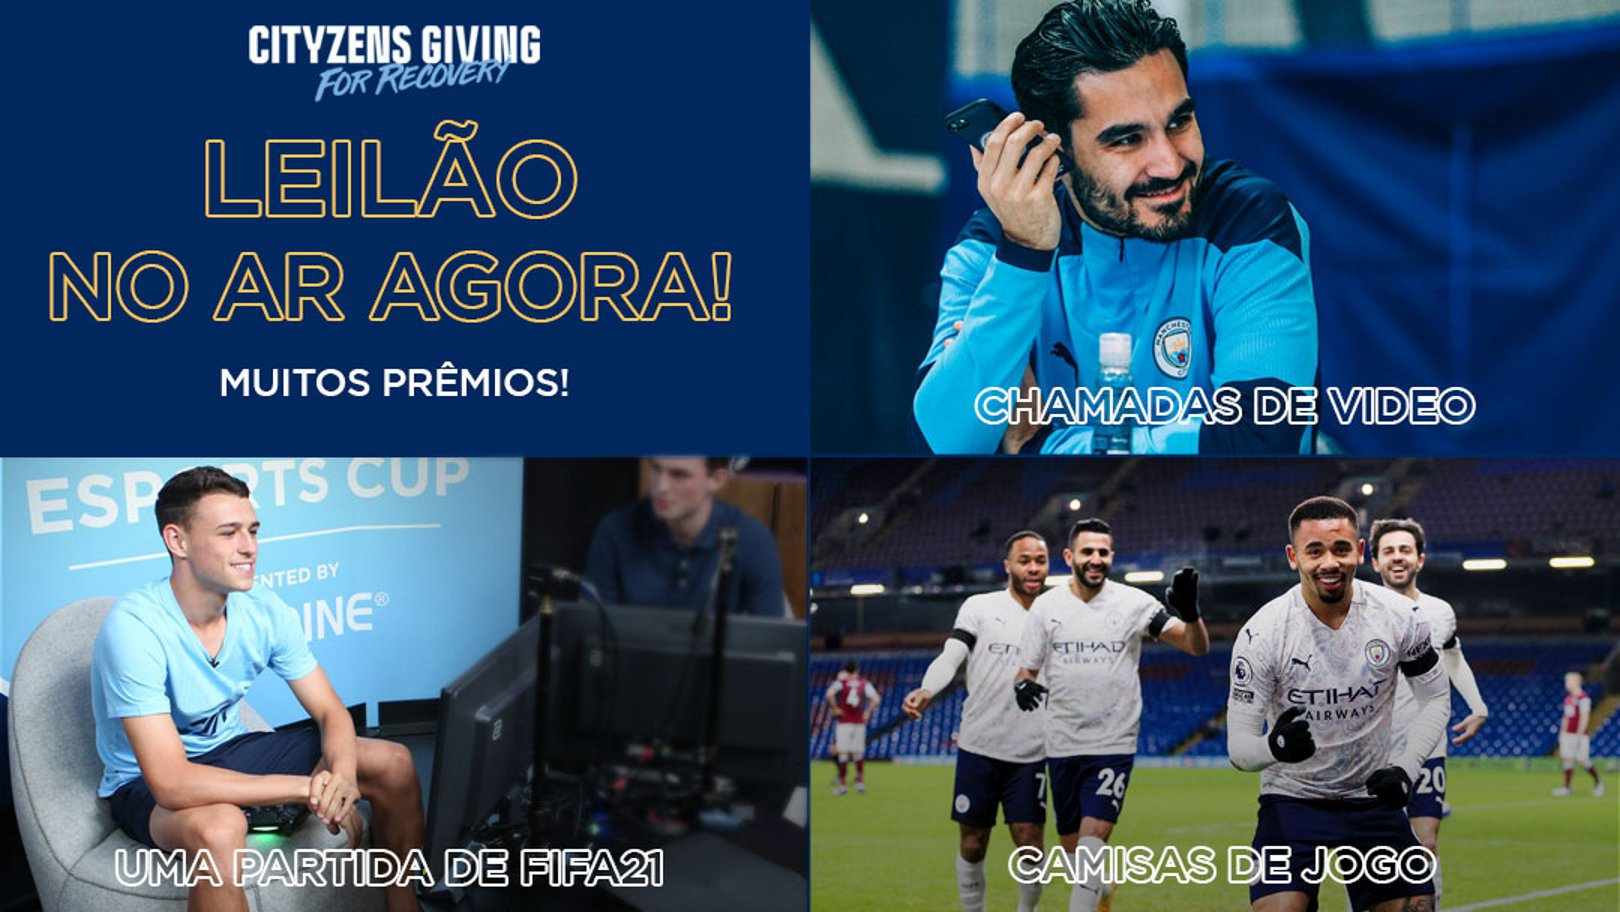 Leilão Cityzens Giving for Recovery Auction começou!